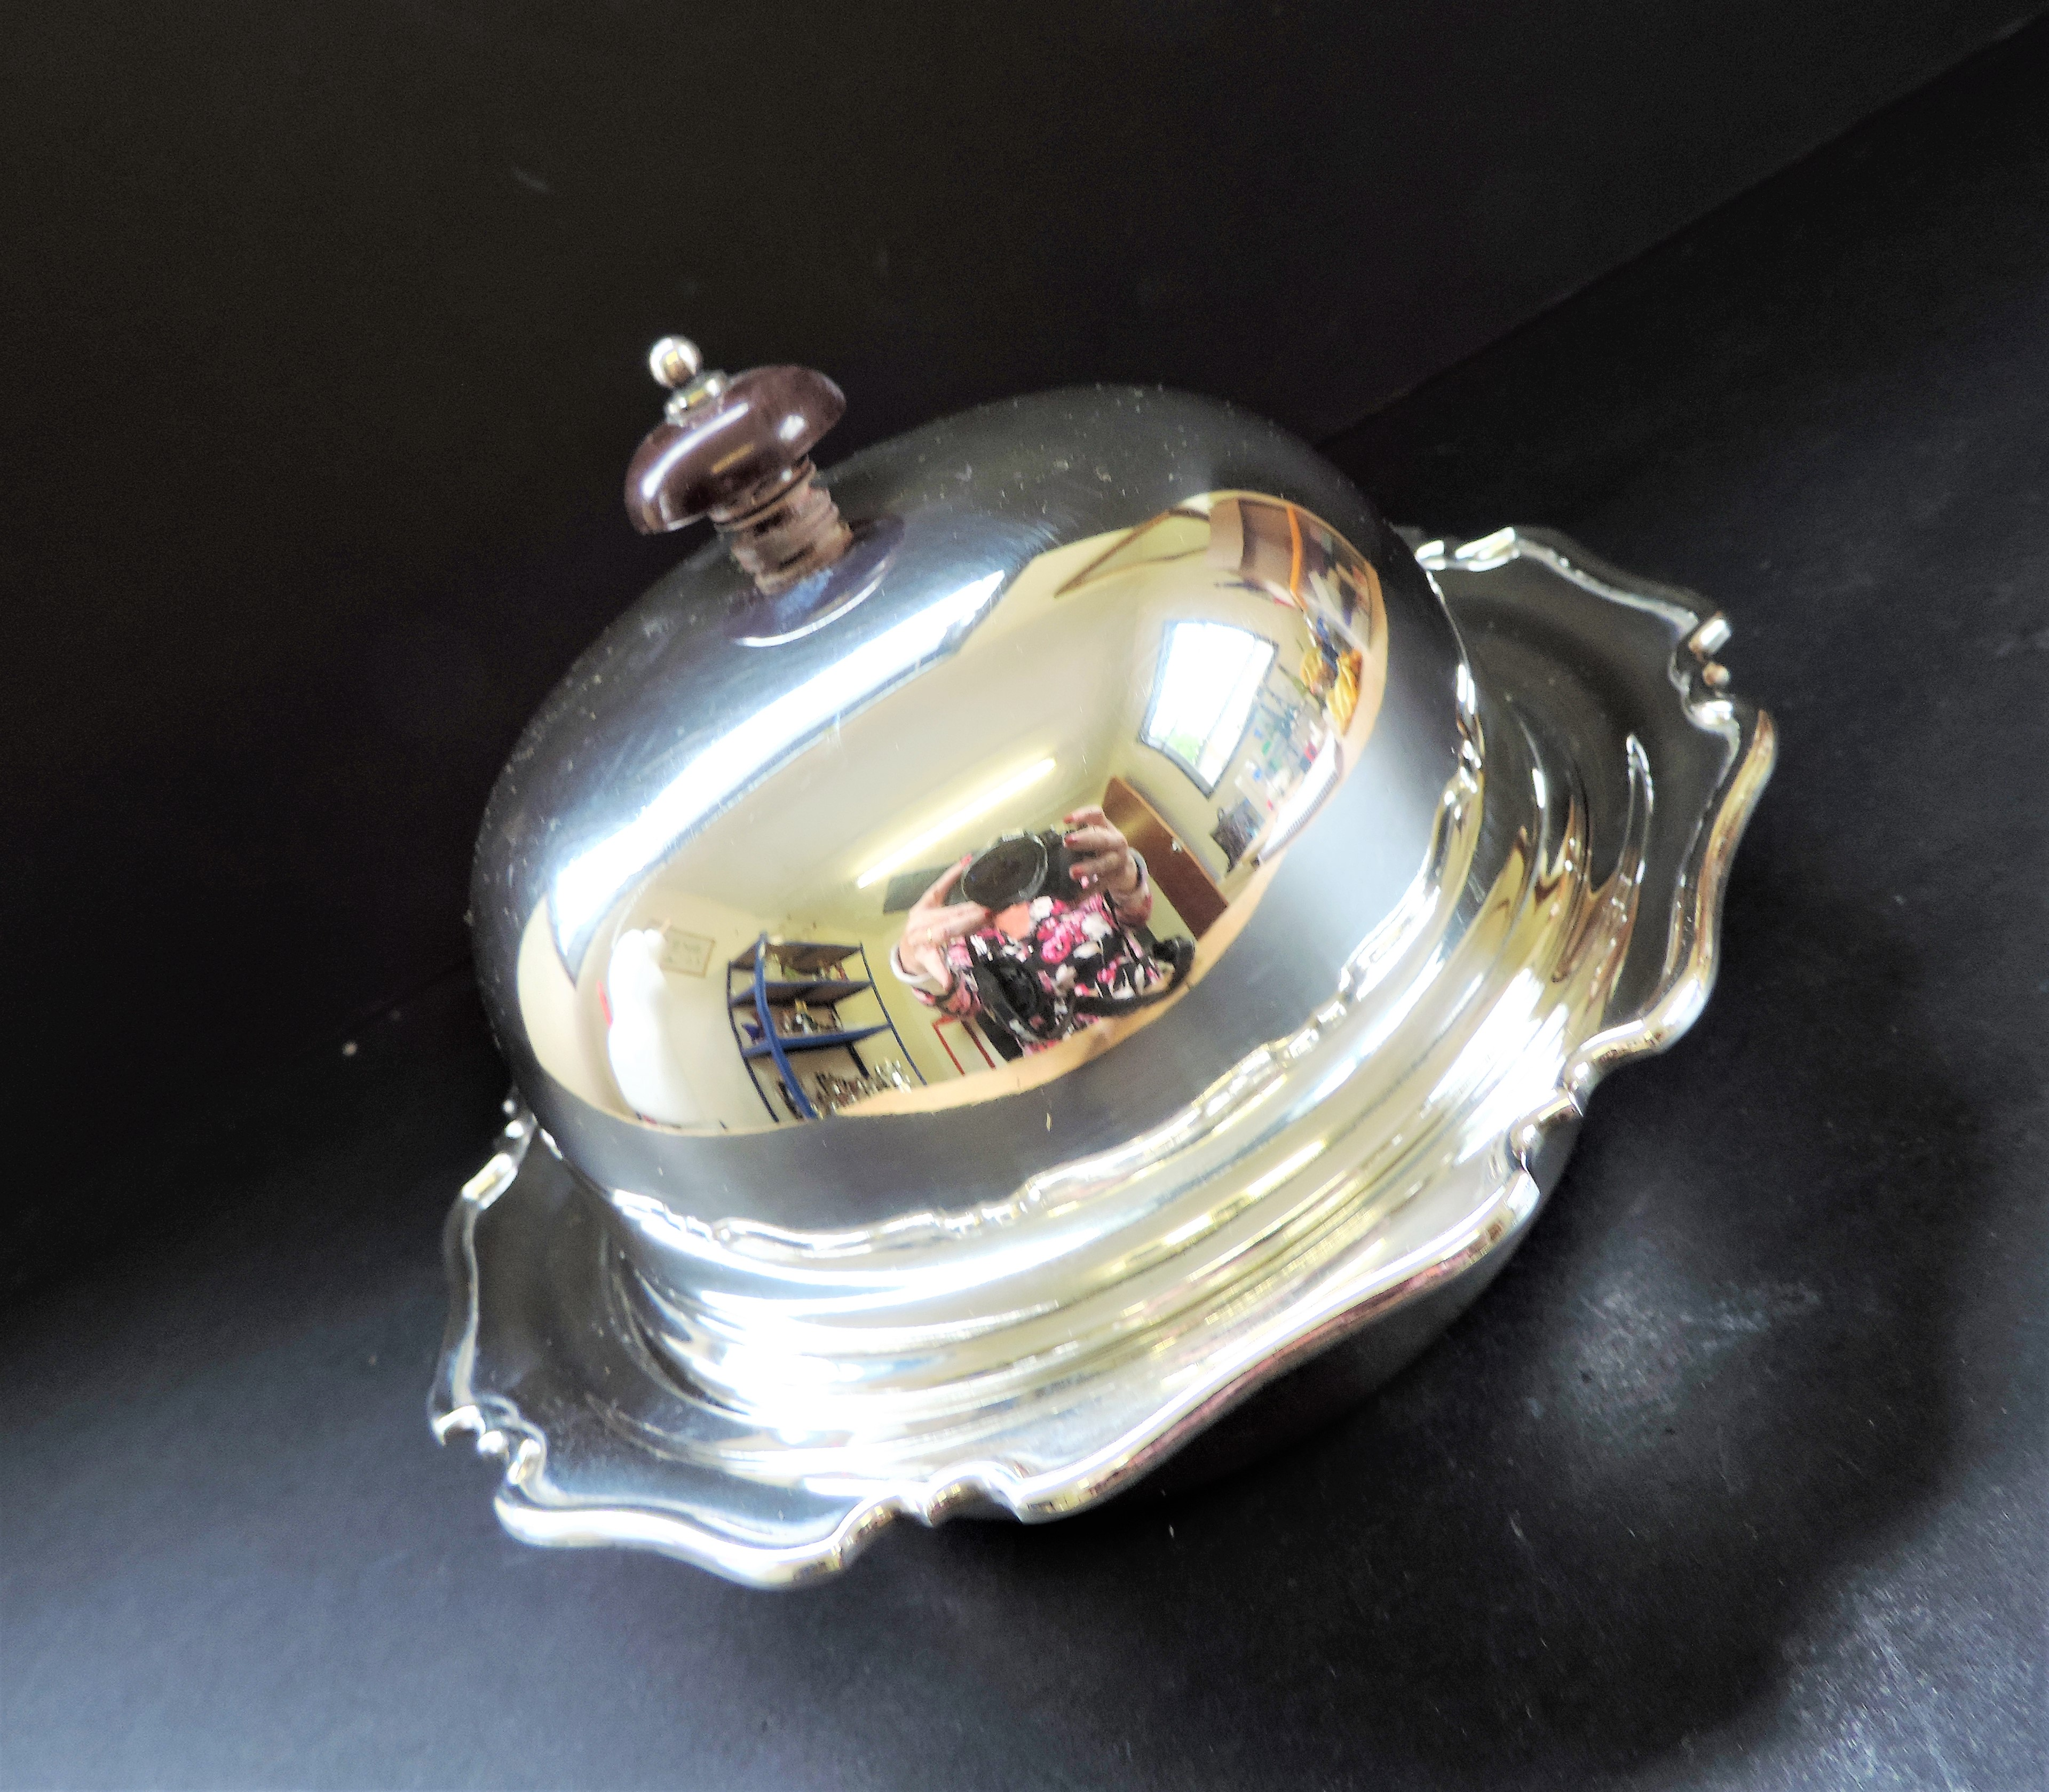 Antique Art Nouveau Silver Plated Muffin Dish/Warmer - Image 6 of 7